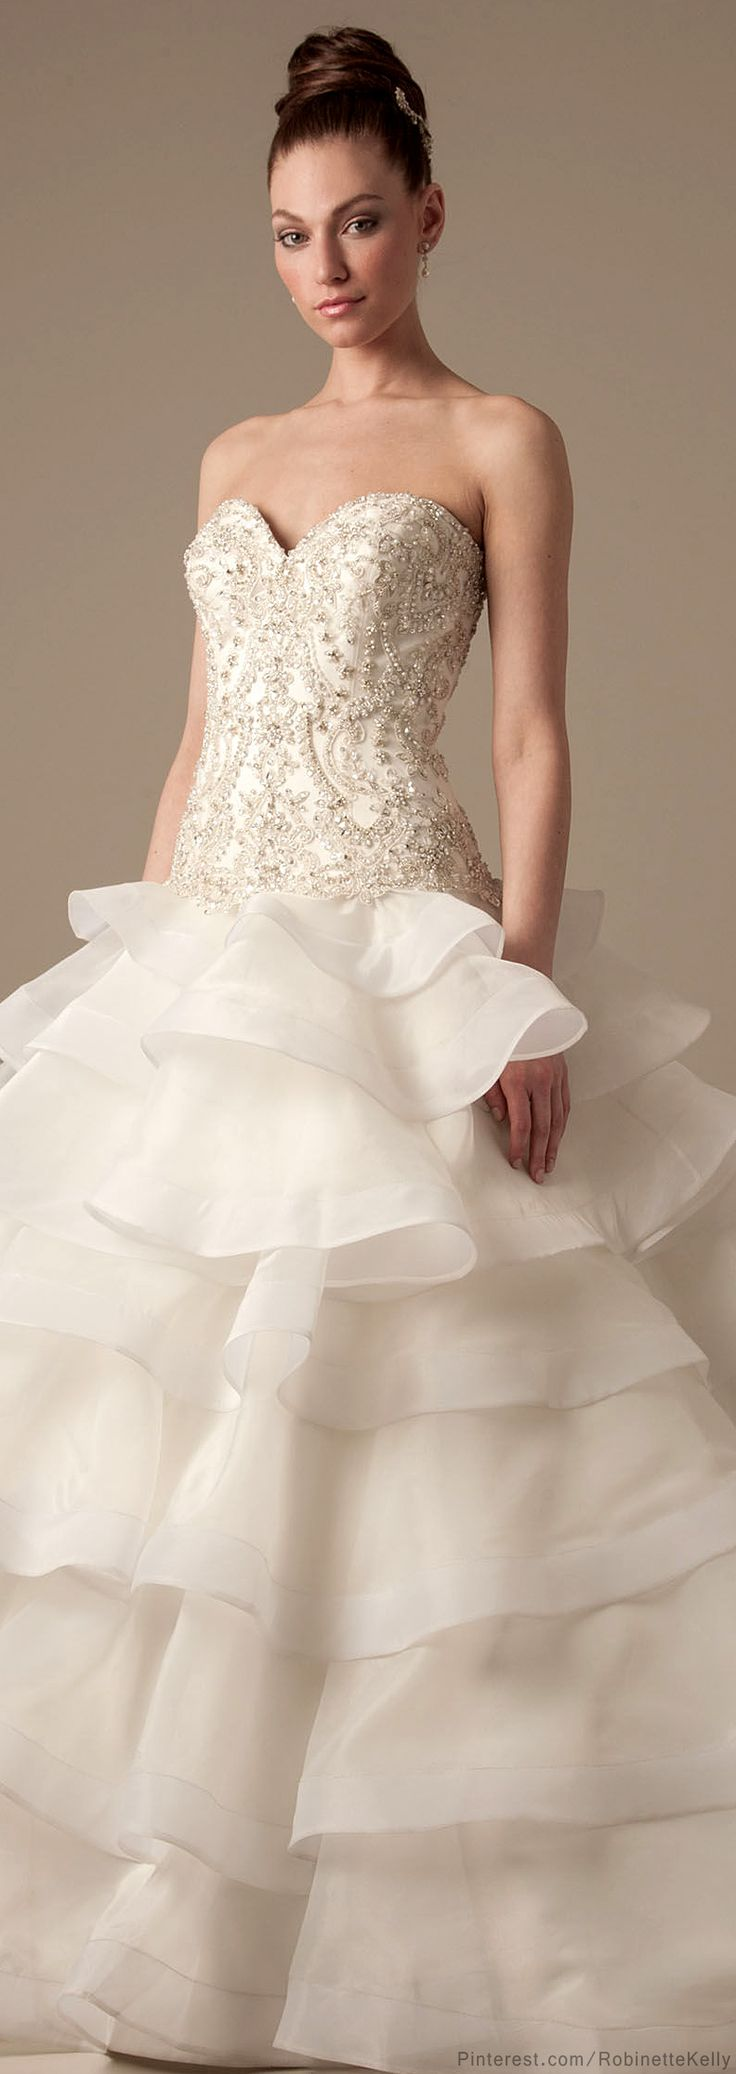 best wedding gowns images on pinterest marriage wedding